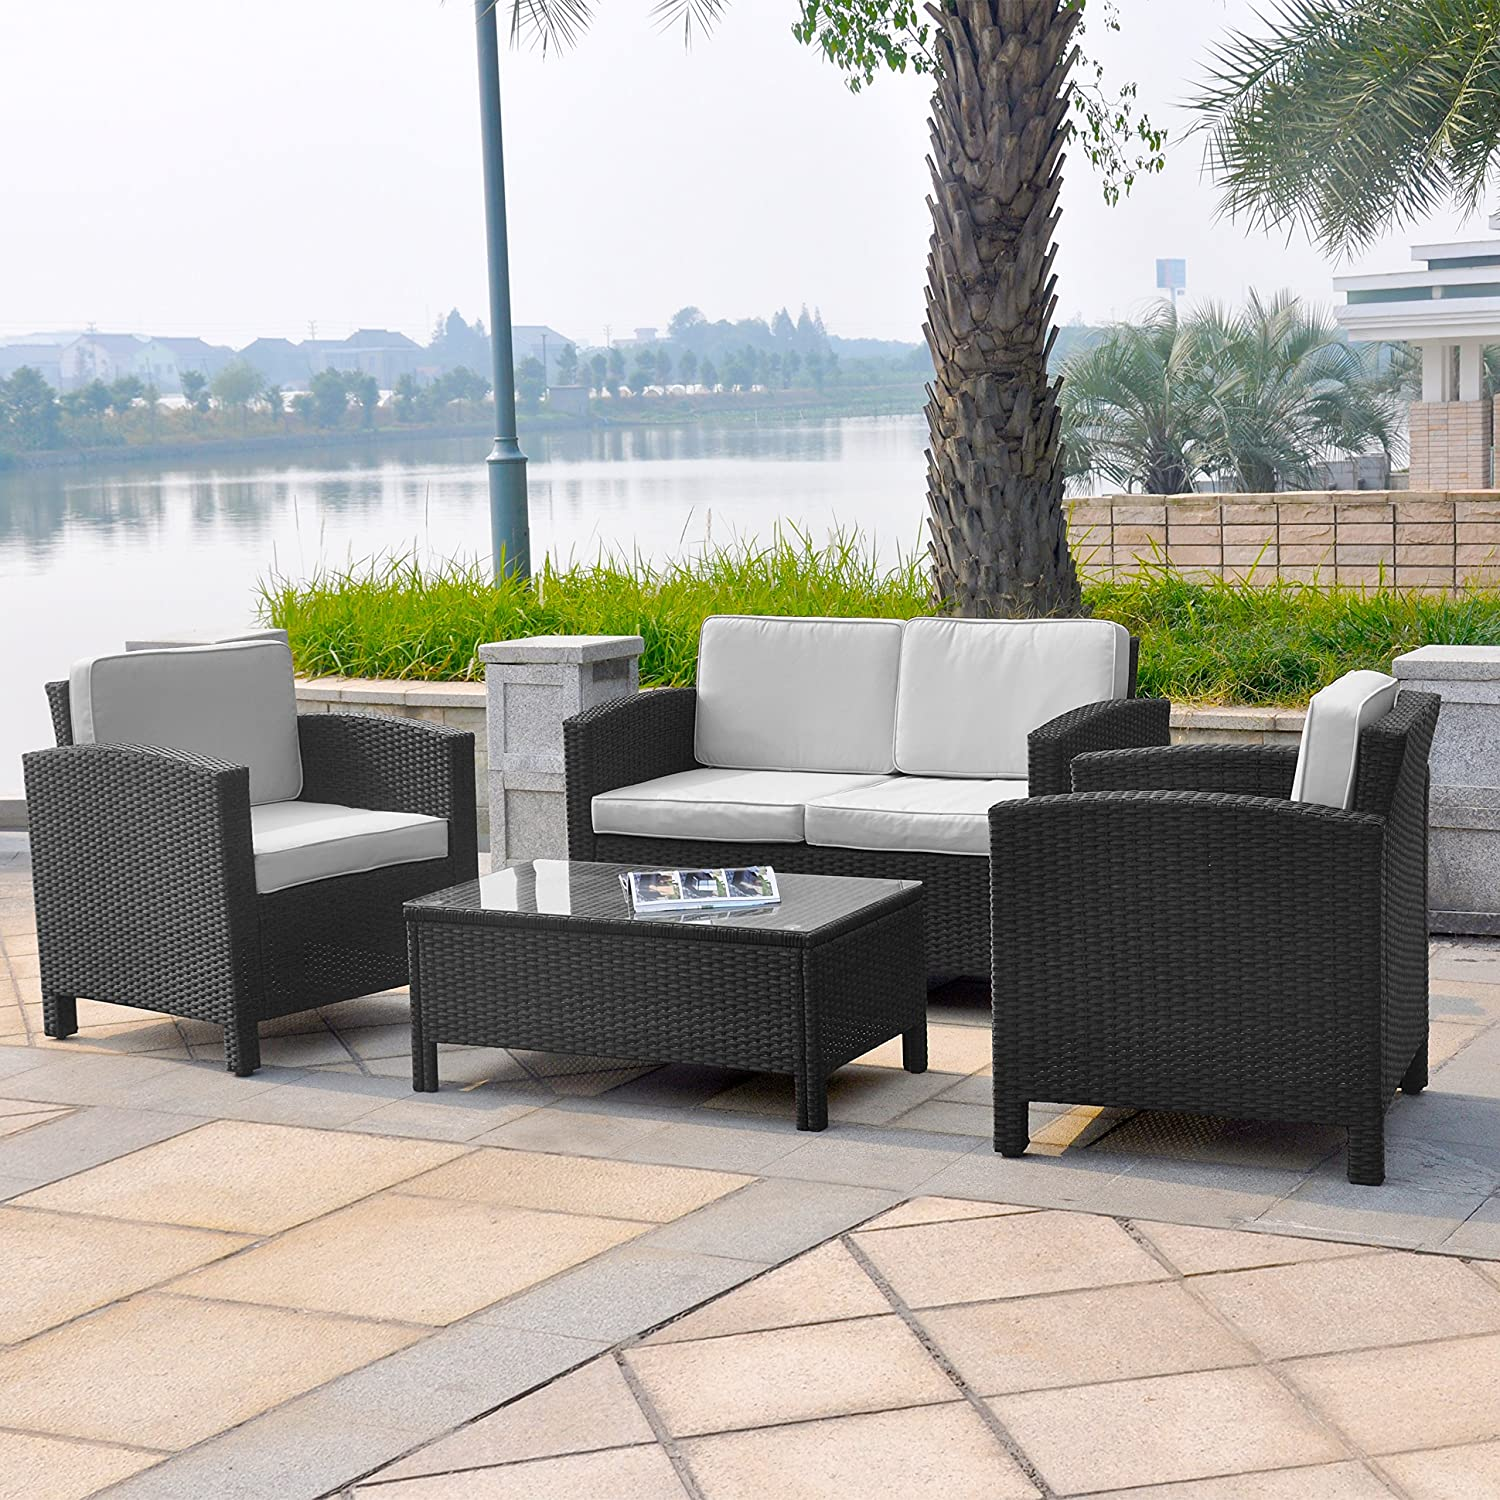 13tlg polyrattan loungem bel set gruppe garnitur gartenm bel rattan lounge set polyrattan. Black Bedroom Furniture Sets. Home Design Ideas